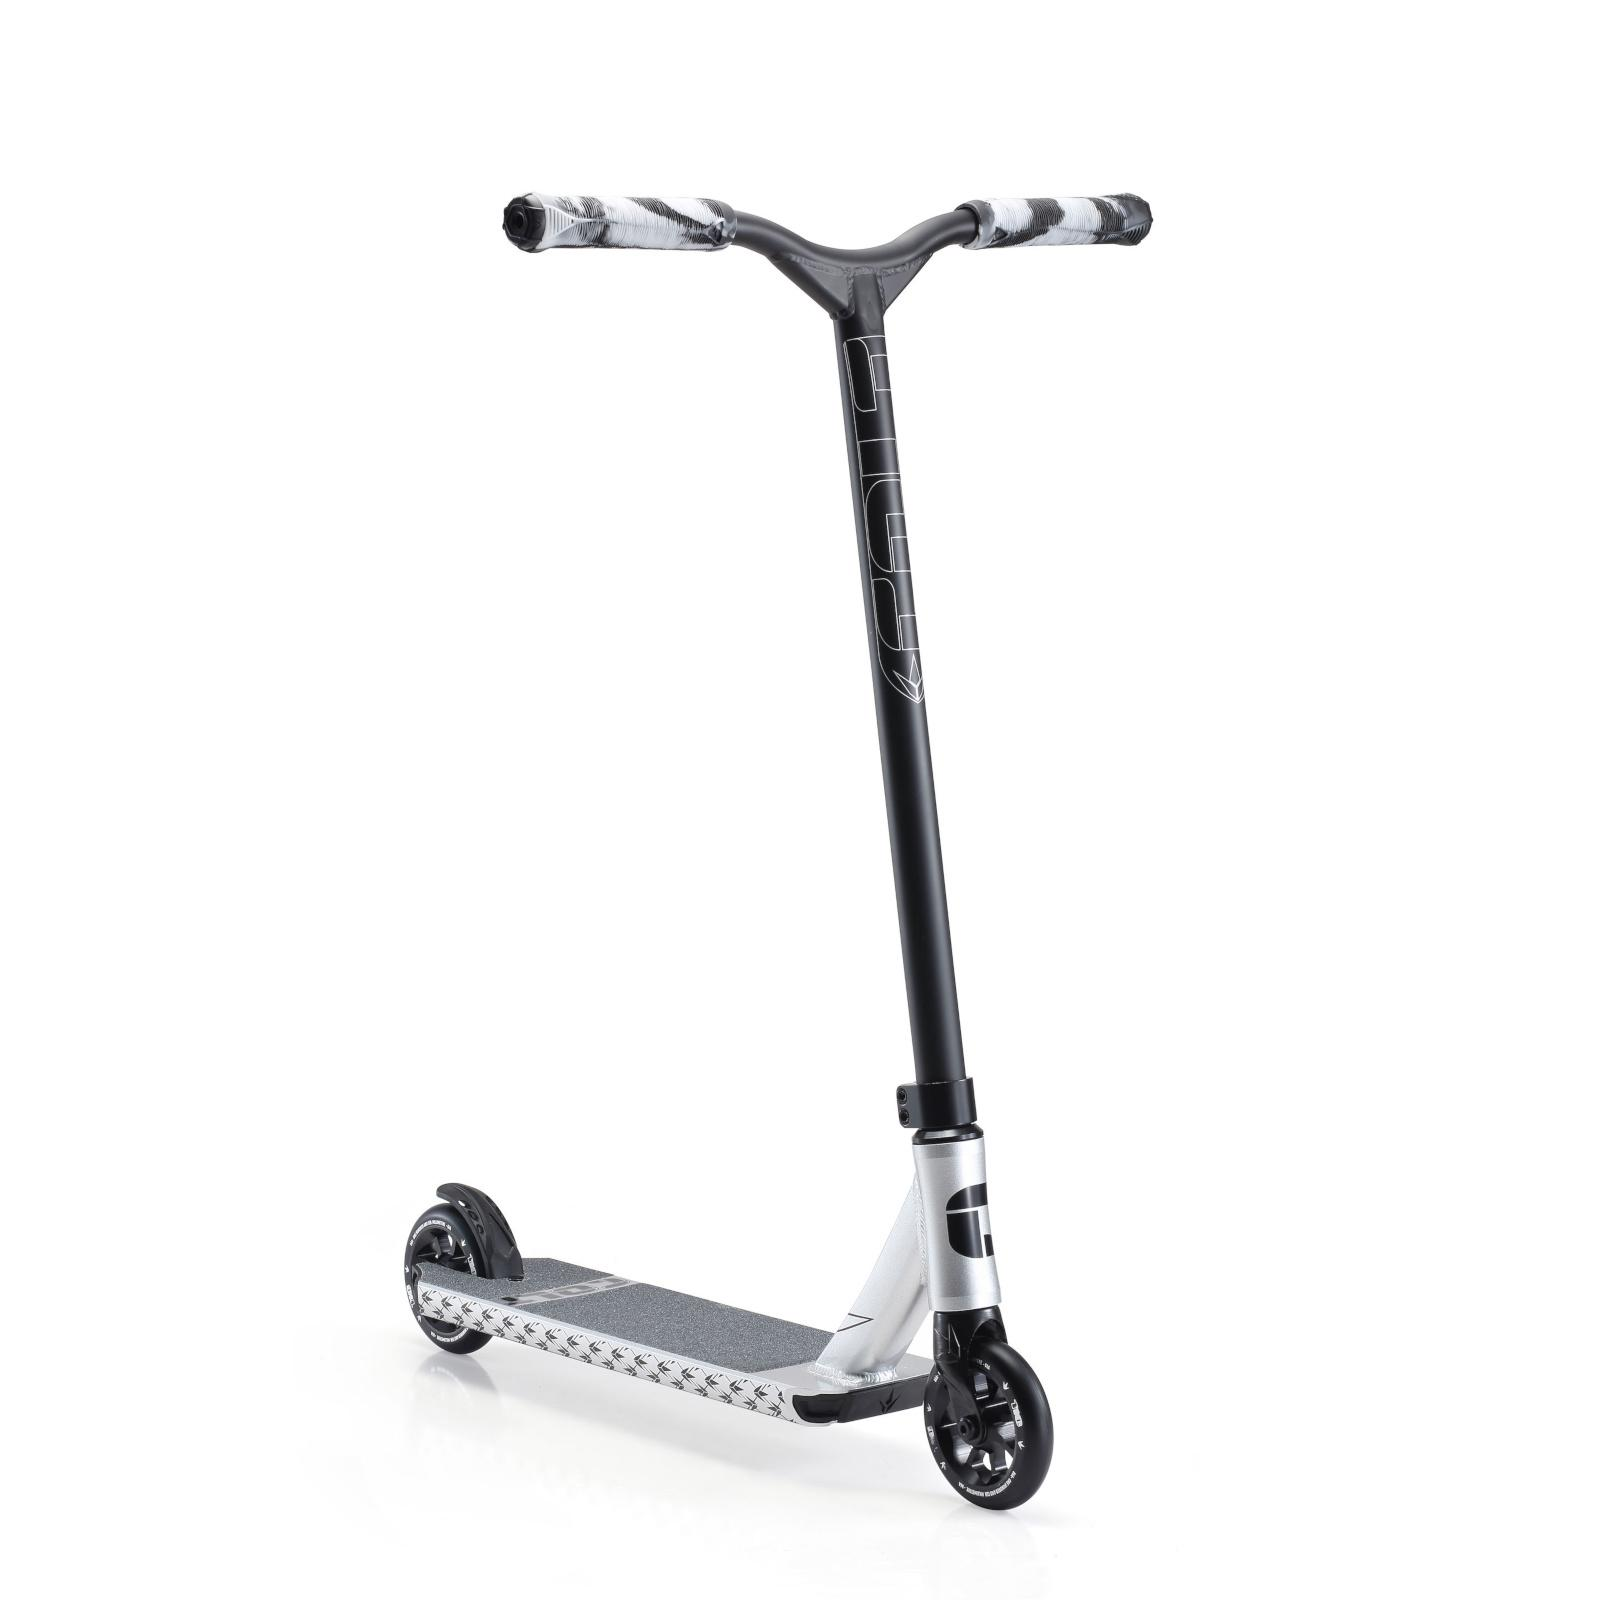 Envy Colt S4 Freestyle Stunt Scooter (beginner To Intermediate Riders) By Pumpanickel.com.